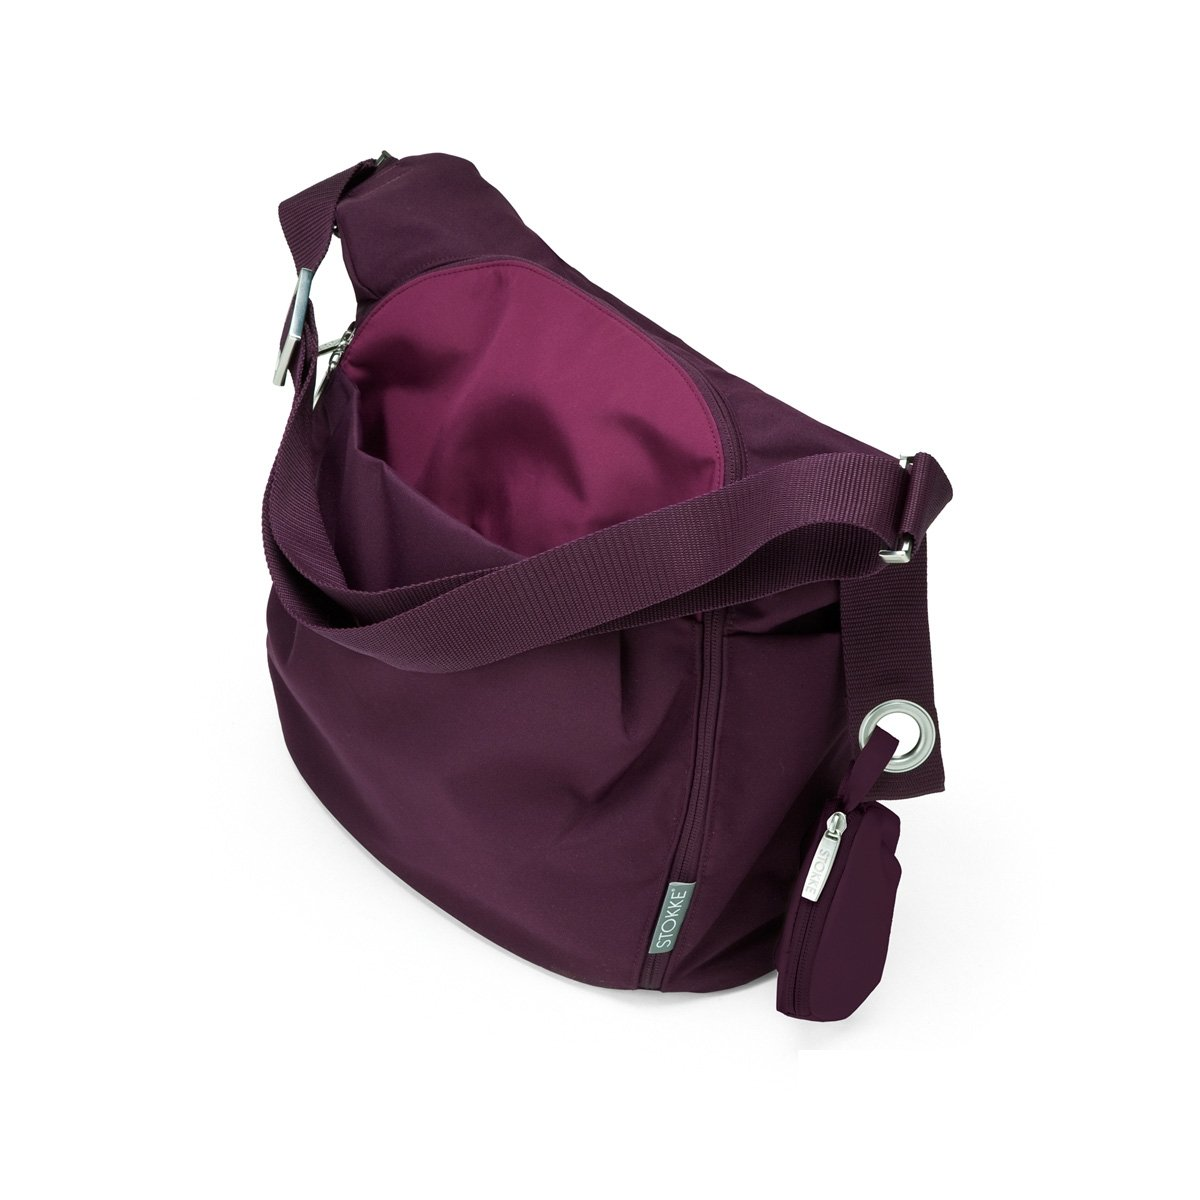 人気No.1 Stokke Xplory Changing B003Q4OMMO Bag, Xplory Purple by Stokke [並行輸入品] Changing B003Q4OMMO, ナガトロマチ:1d4f2476 --- arianechie.dominiotemporario.com